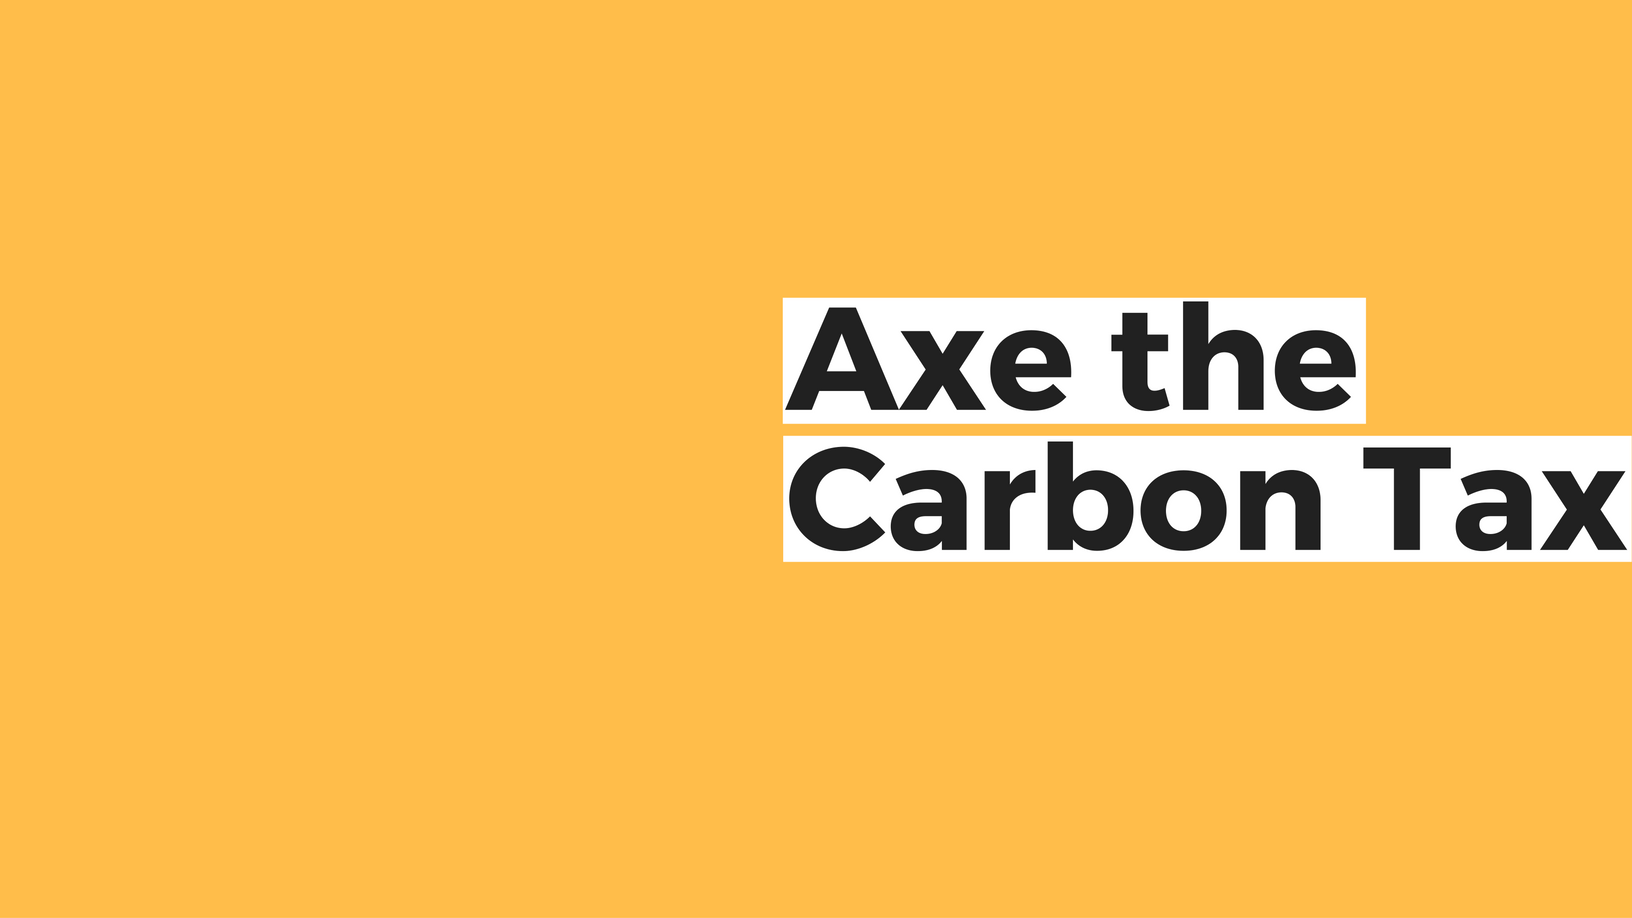 Tell the NDP to axe their job-killing carbon tax